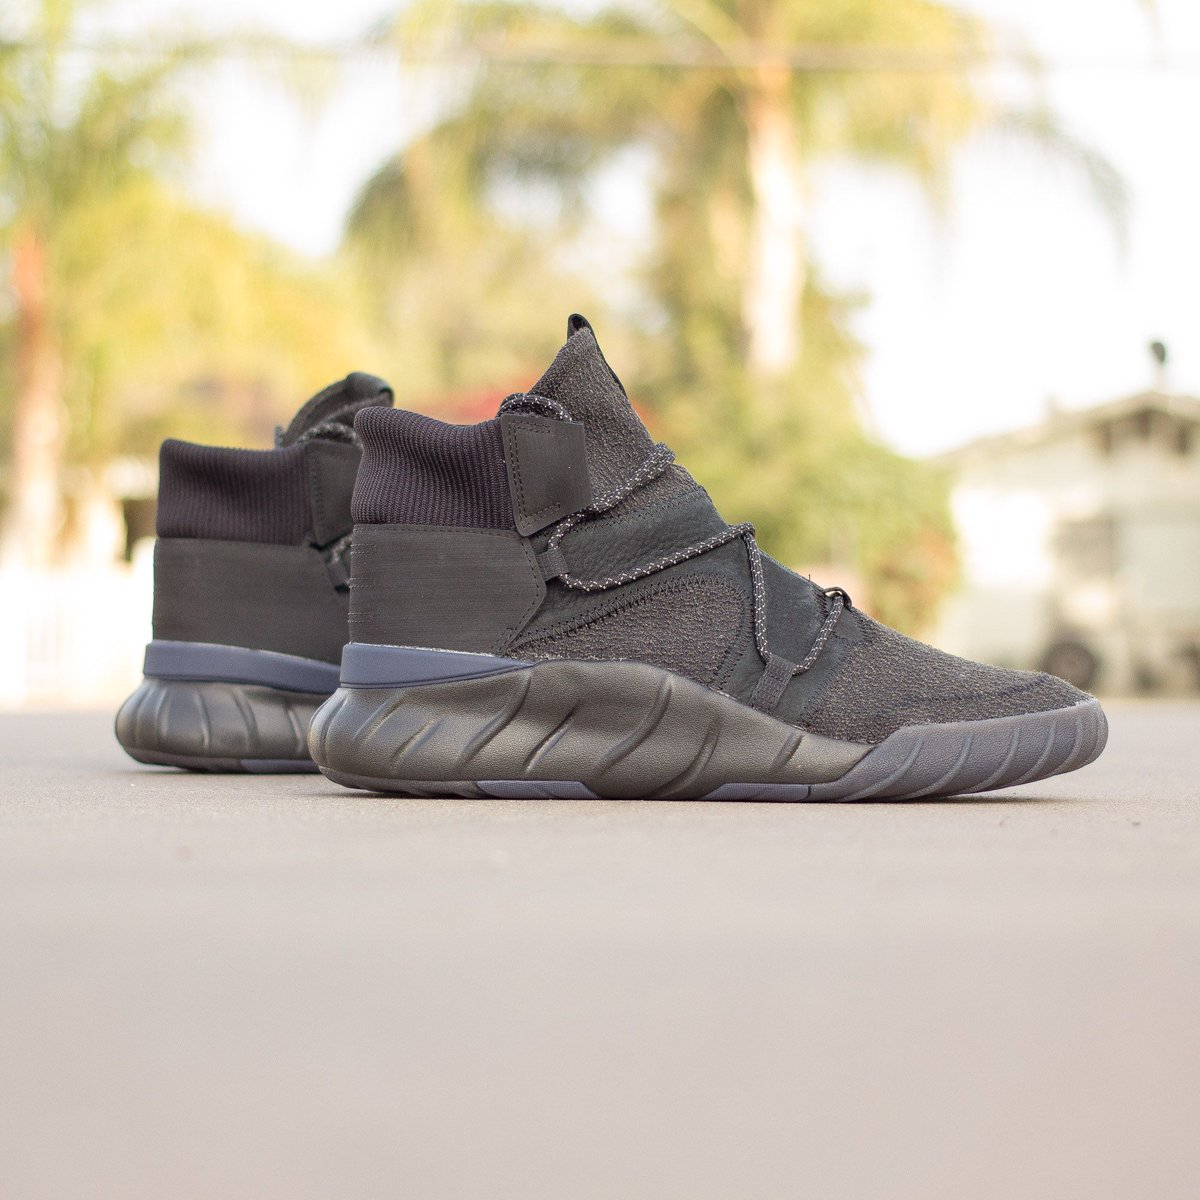 Core Black Covers The adidas Tubular X Primeknit